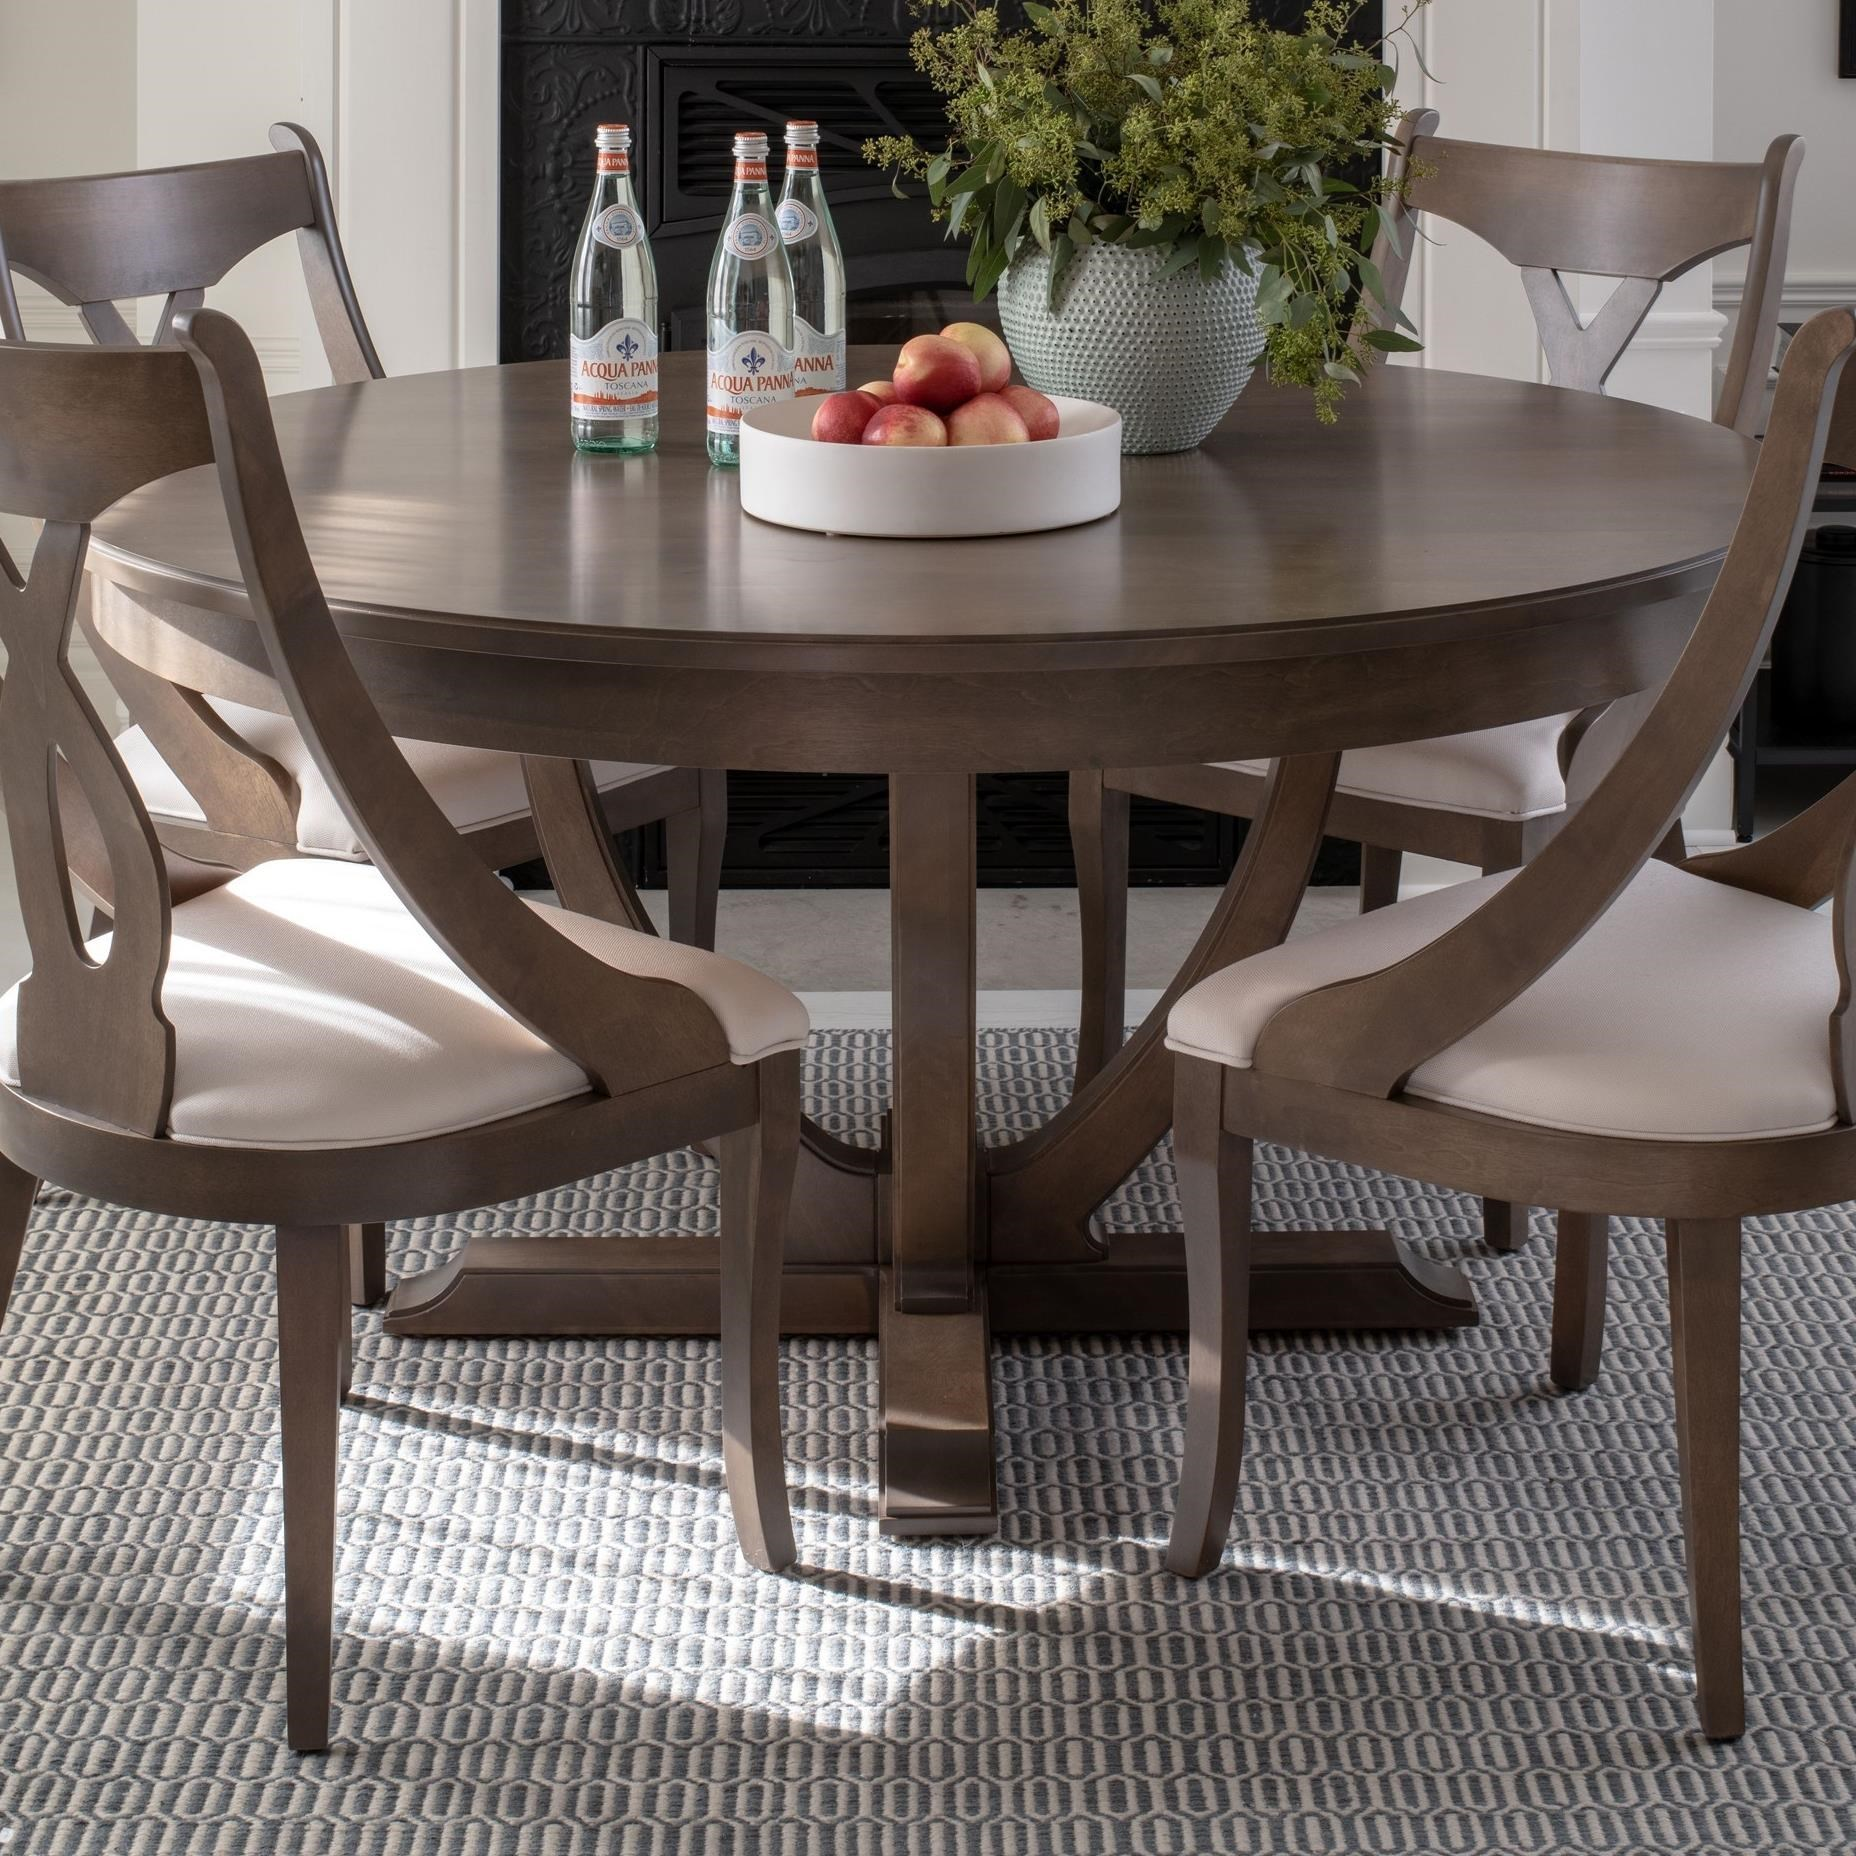 Classic Customizable Round Dining Table by Canadel at Dinette Depot